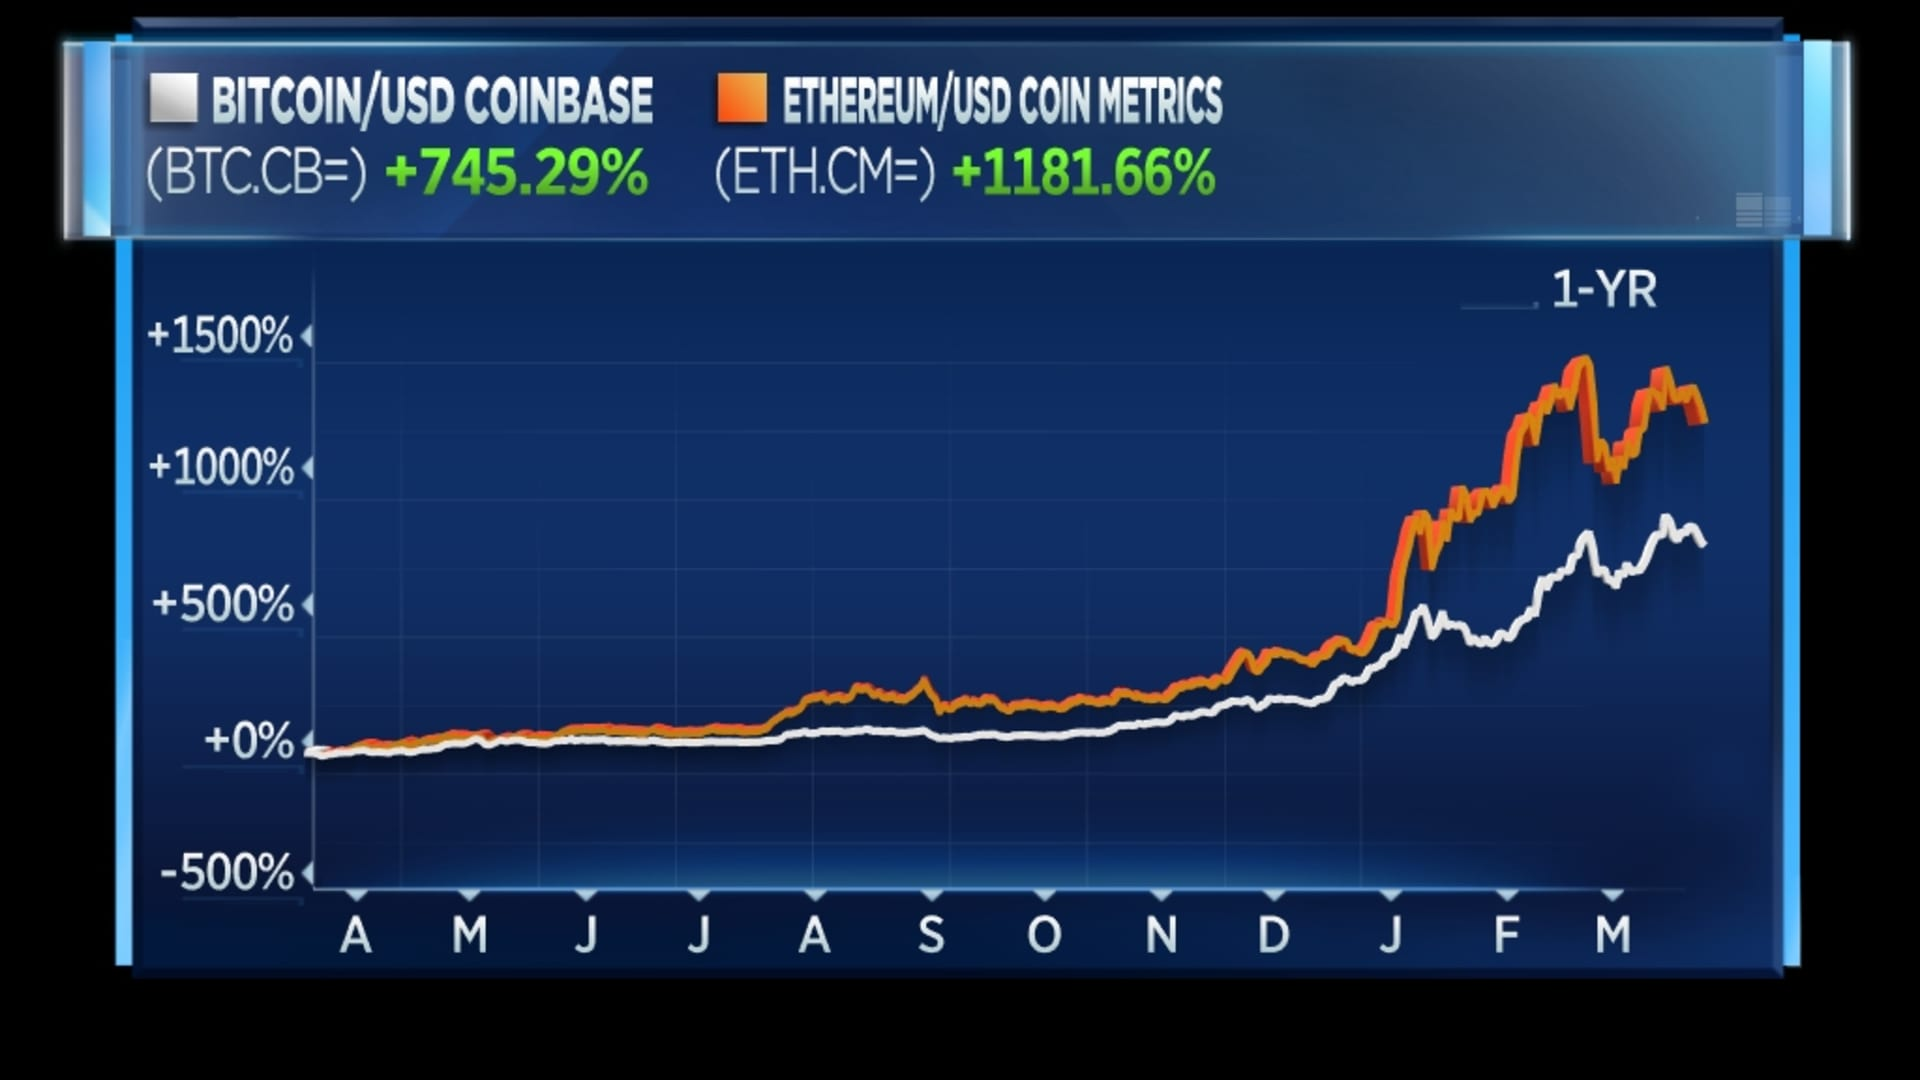 Bitcoin and ethereum over 12 months